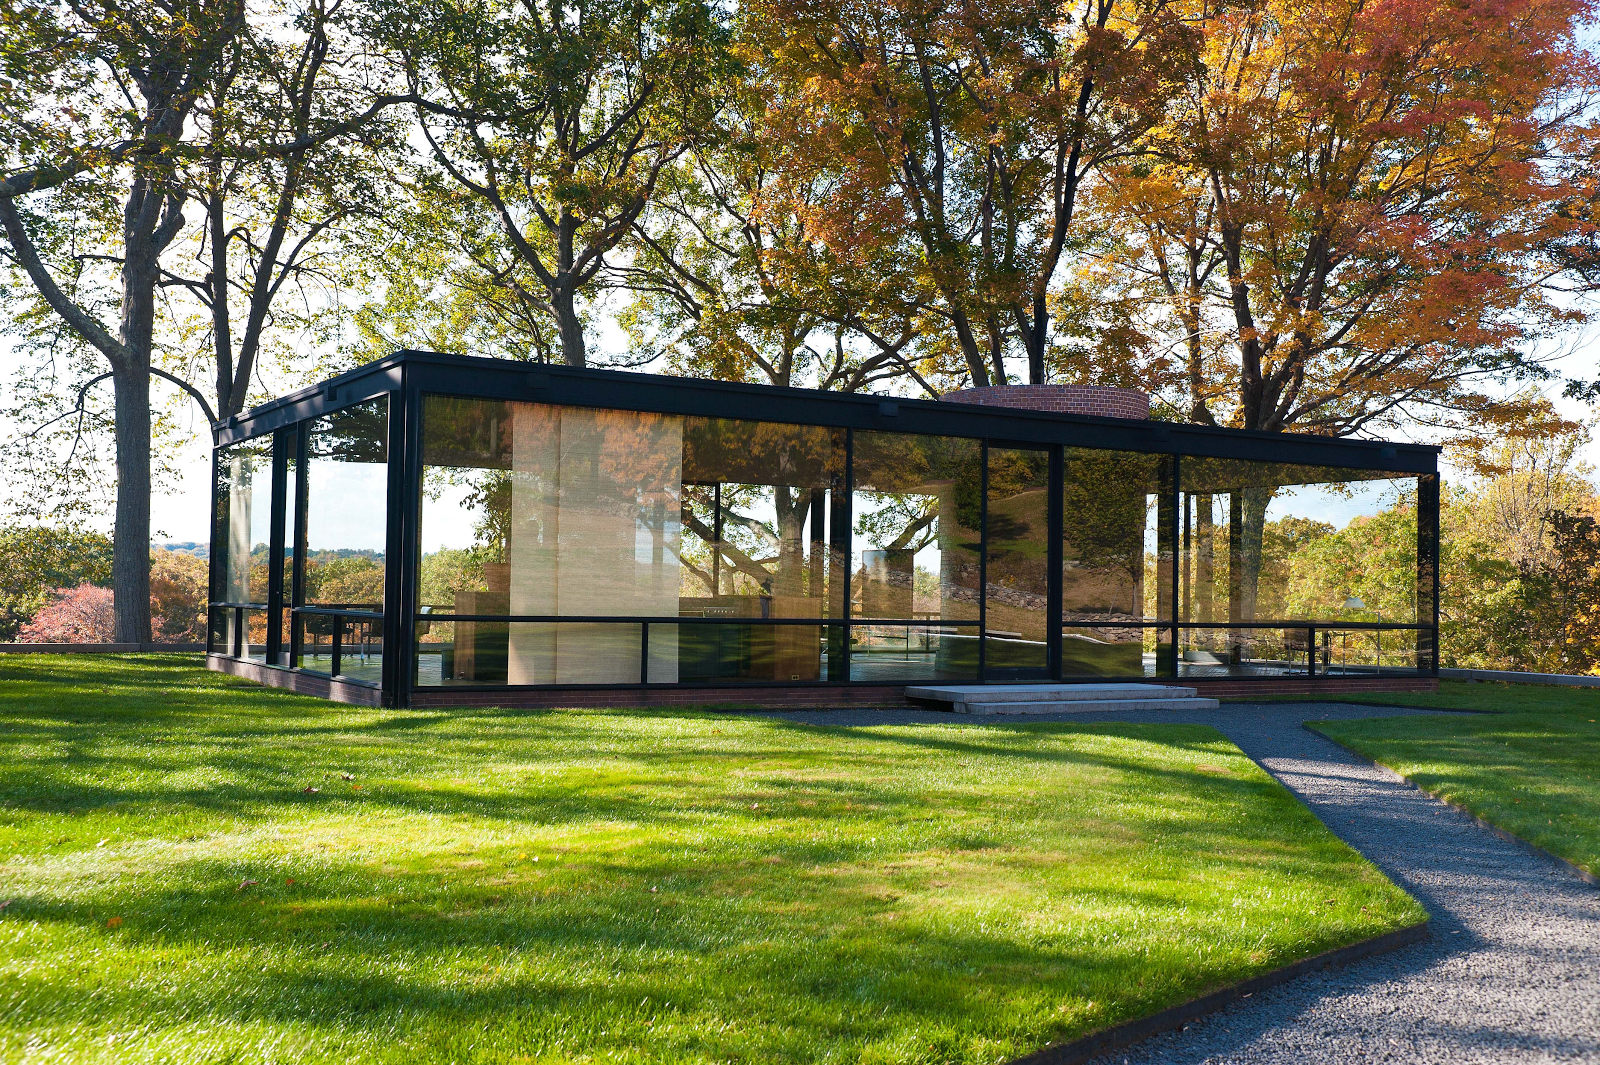 The Glass House, Philip Johnson, New Canaan, Connecticut, 1949.